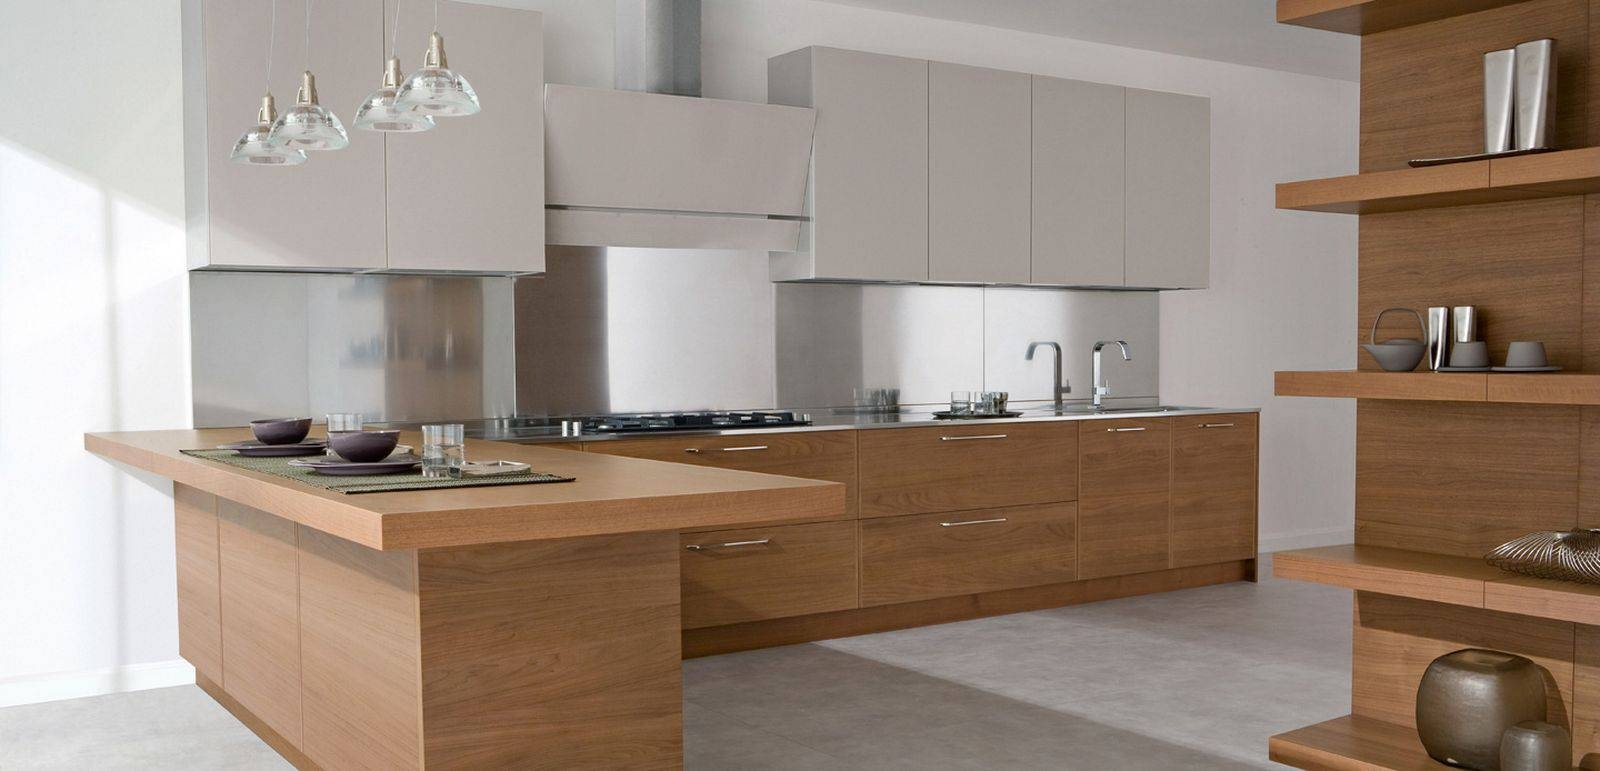 Ideas, delta faucet allen wrench size delta faucet allen wrench size kitchen designs kitchen island design this old house island cart 1600 x 771  .